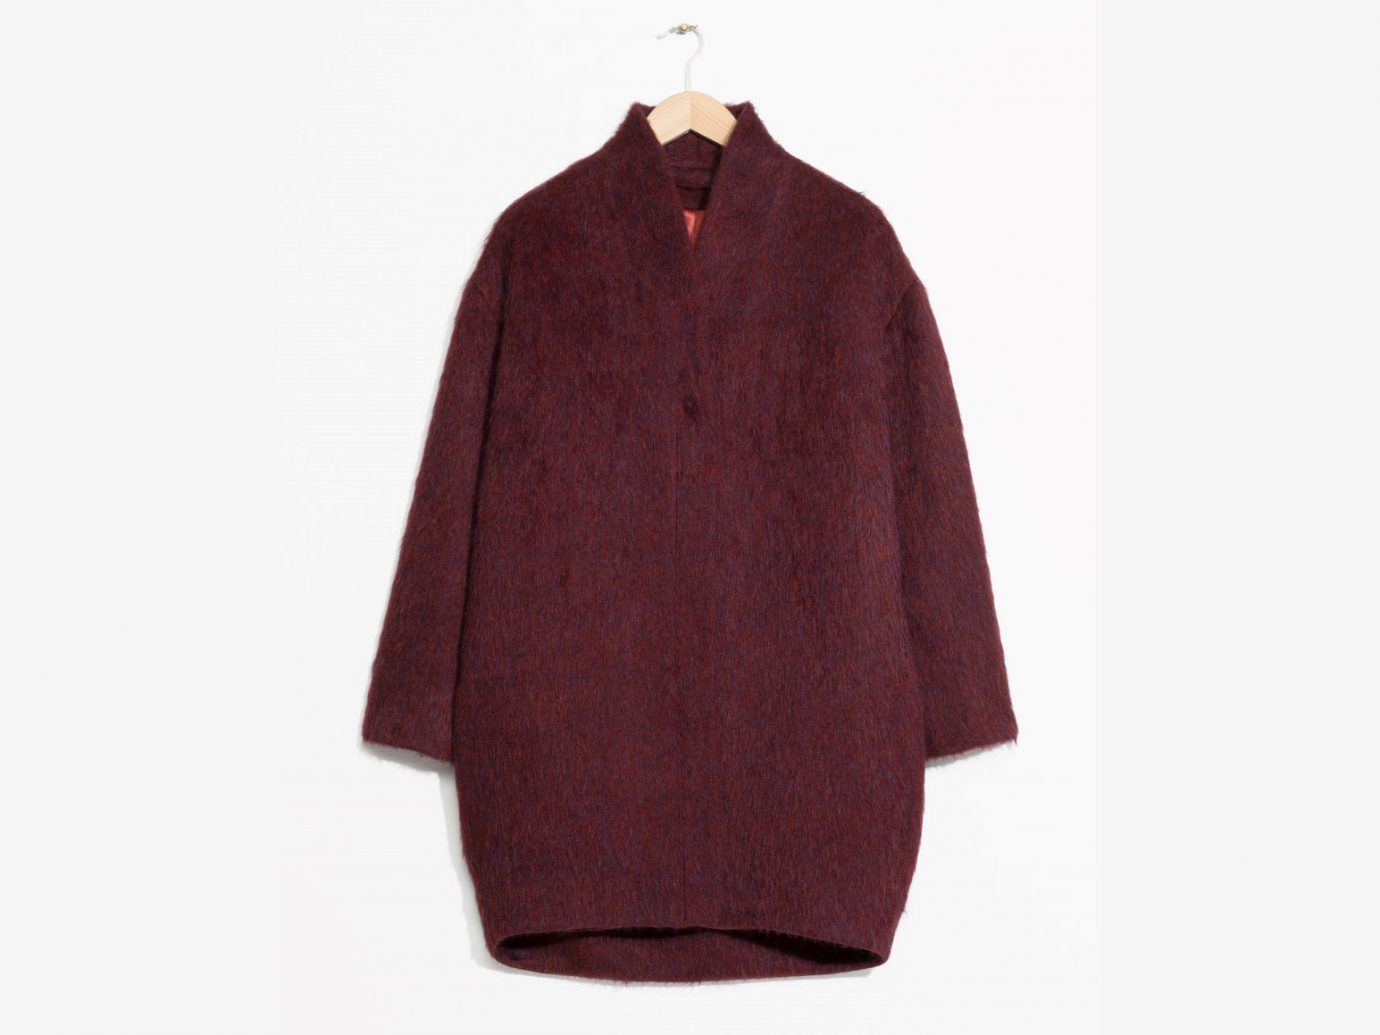 City NYC Style + Design Travel Shop clothing maroon woolen coat sleeve neck